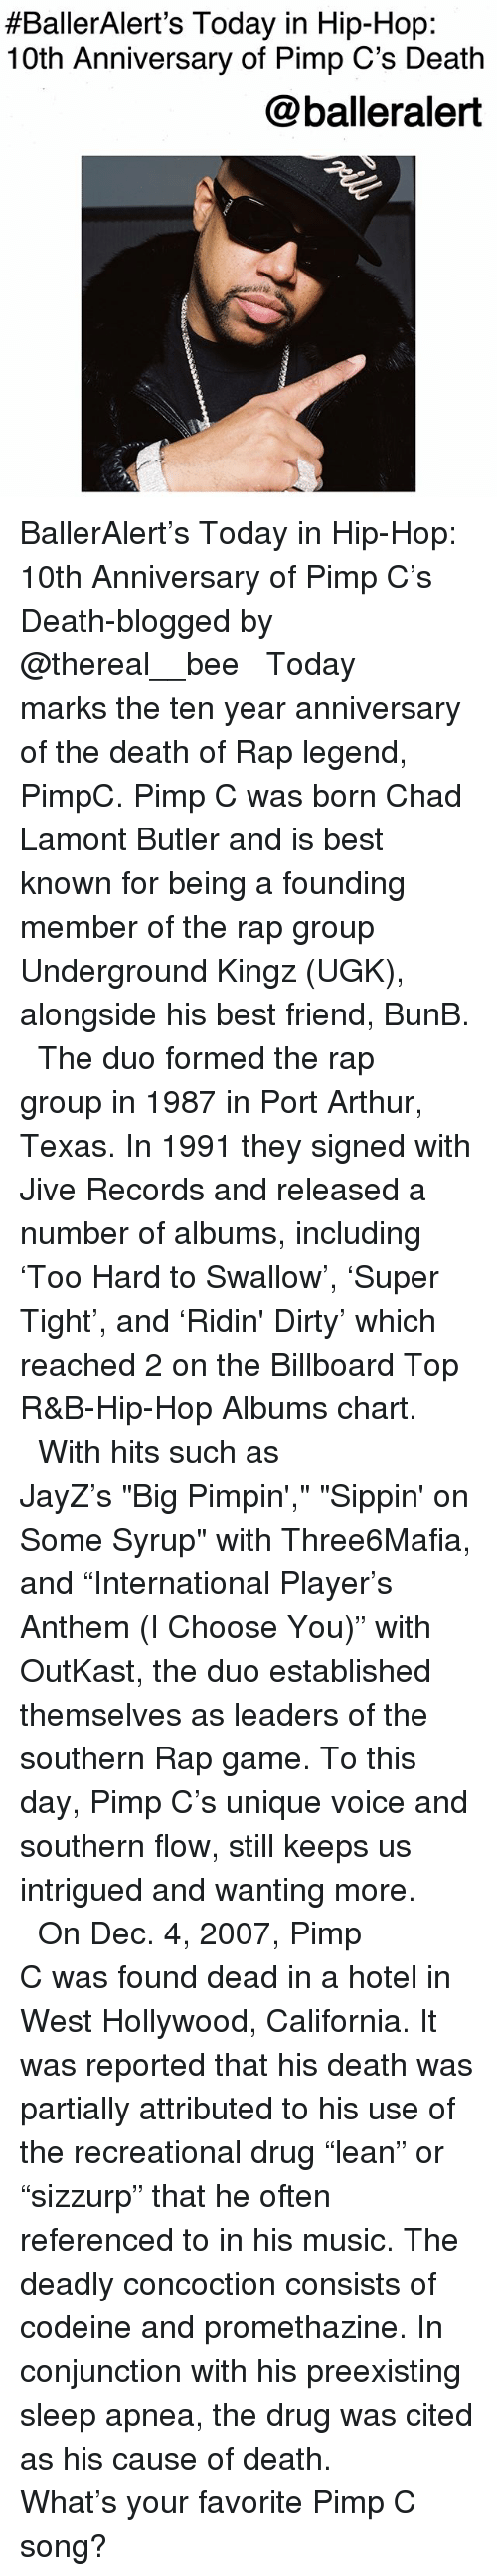 "Arthur, Best Friend, and Billboard:  #BallerAlert's Today in Hip-Hop:  10th Anniversary of Pimp C's Death  @balleralert BallerAlert's Today in Hip-Hop: 10th Anniversary of Pimp C's Death-blogged by @thereal__bee ⠀⠀⠀⠀⠀⠀⠀⠀⠀ ⠀⠀ Today marks the ten year anniversary of the death of Rap legend, PimpC. Pimp C was born Chad Lamont Butler and is best known for being a founding member of the rap group Underground Kingz (UGK), alongside his best friend, BunB. ⠀⠀⠀⠀⠀⠀⠀⠀⠀ ⠀⠀ The duo formed the rap group in 1987 in Port Arthur, Texas. In 1991 they signed with Jive Records and released a number of albums, including 'Too Hard to Swallow', 'Super Tight', and 'Ridin' Dirty' which reached 2 on the Billboard Top R&B-Hip-Hop Albums chart. ⠀⠀⠀⠀⠀⠀⠀⠀⠀ ⠀⠀ With hits such as JayZ's ""Big Pimpin',"" ""Sippin' on Some Syrup"" with Three6Mafia, and ""International Player's Anthem (I Choose You)"" with OutKast, the duo established themselves as leaders of the southern Rap game. To this day, Pimp C's unique voice and southern flow, still keeps us intrigued and wanting more. ⠀⠀⠀⠀⠀⠀⠀⠀⠀ ⠀⠀ On Dec. 4, 2007, Pimp C was found dead in a hotel in West Hollywood, California. It was reported that his death was partially attributed to his use of the recreational drug ""lean"" or ""sizzurp"" that he often referenced to in his music. The deadly concoction consists of codeine and promethazine. In conjunction with his preexisting sleep apnea, the drug was cited as his cause of death. ⠀⠀⠀⠀⠀⠀⠀⠀⠀ ⠀⠀ What's your favorite Pimp C song?"